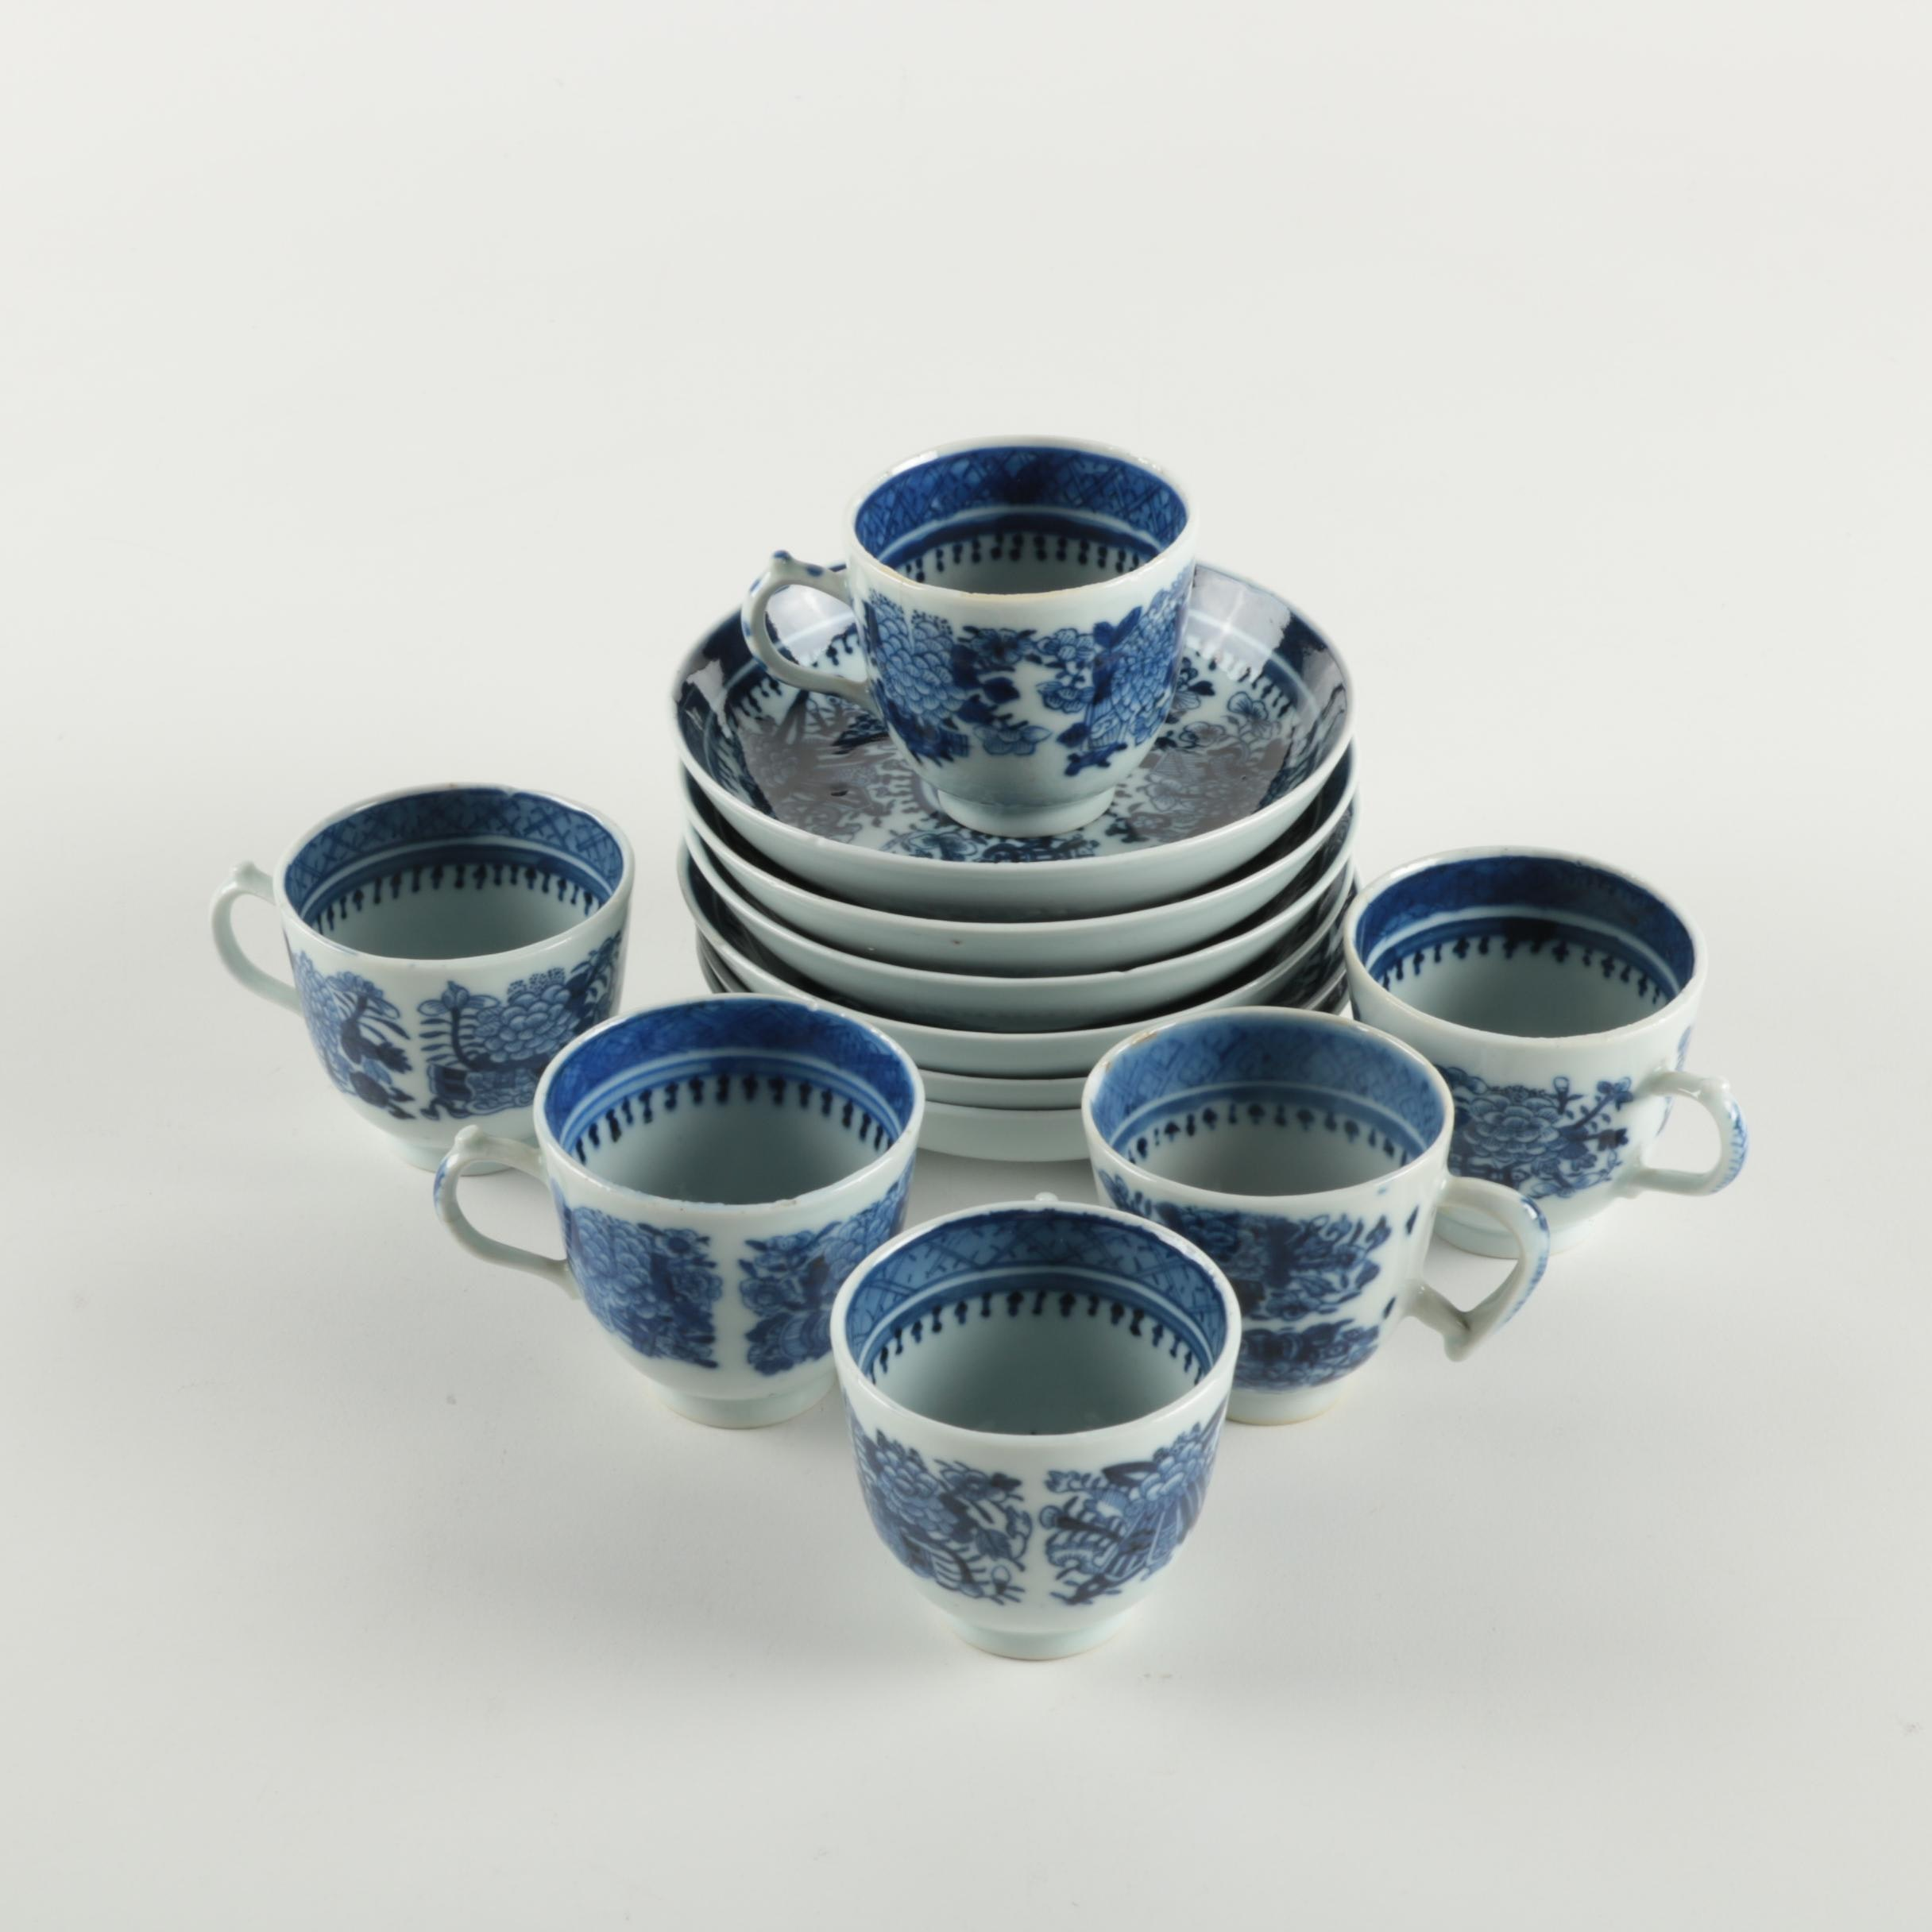 Antique Chinese Export Blue and White Demitasse Set